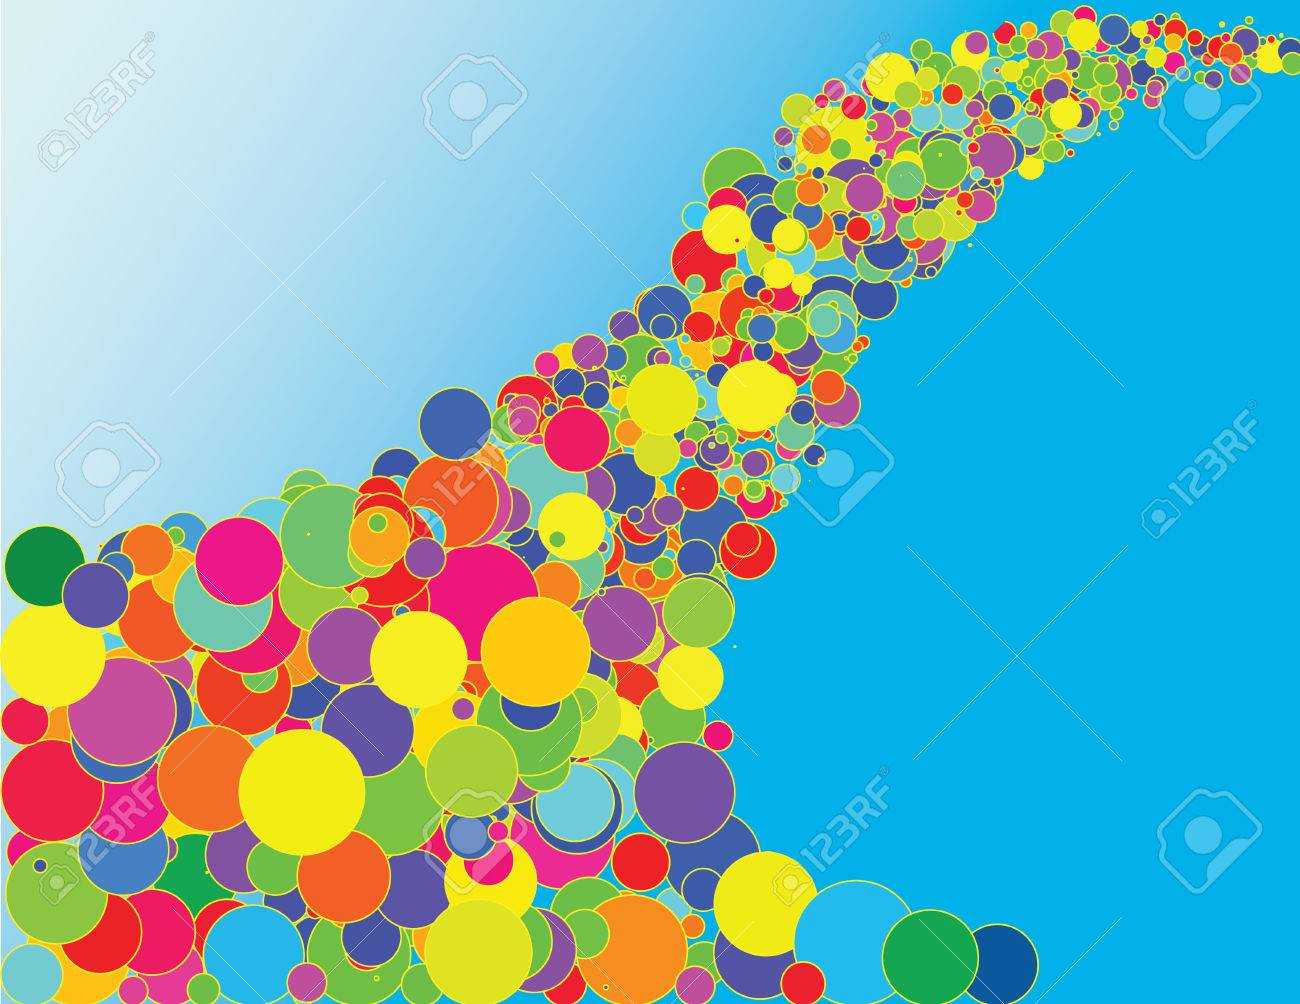 Vector - colorful bubbles with yellow outline flowing on a sky-like blue gradient Stock Vector - 4579550